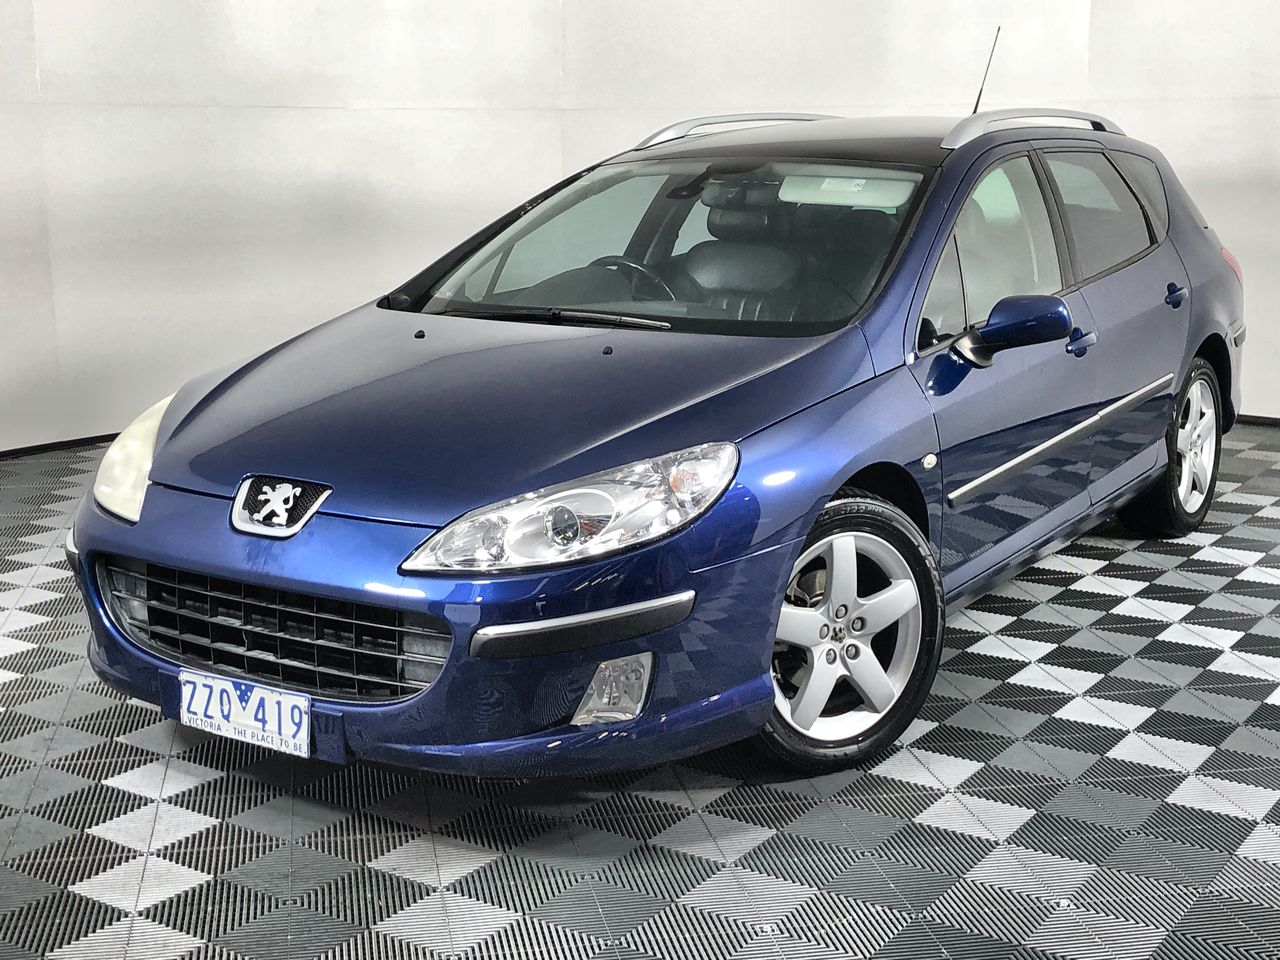 2005 Peugeot 407 ST HDi TOURING EXECUTIVE Turbo Diesel Automatic Wagon